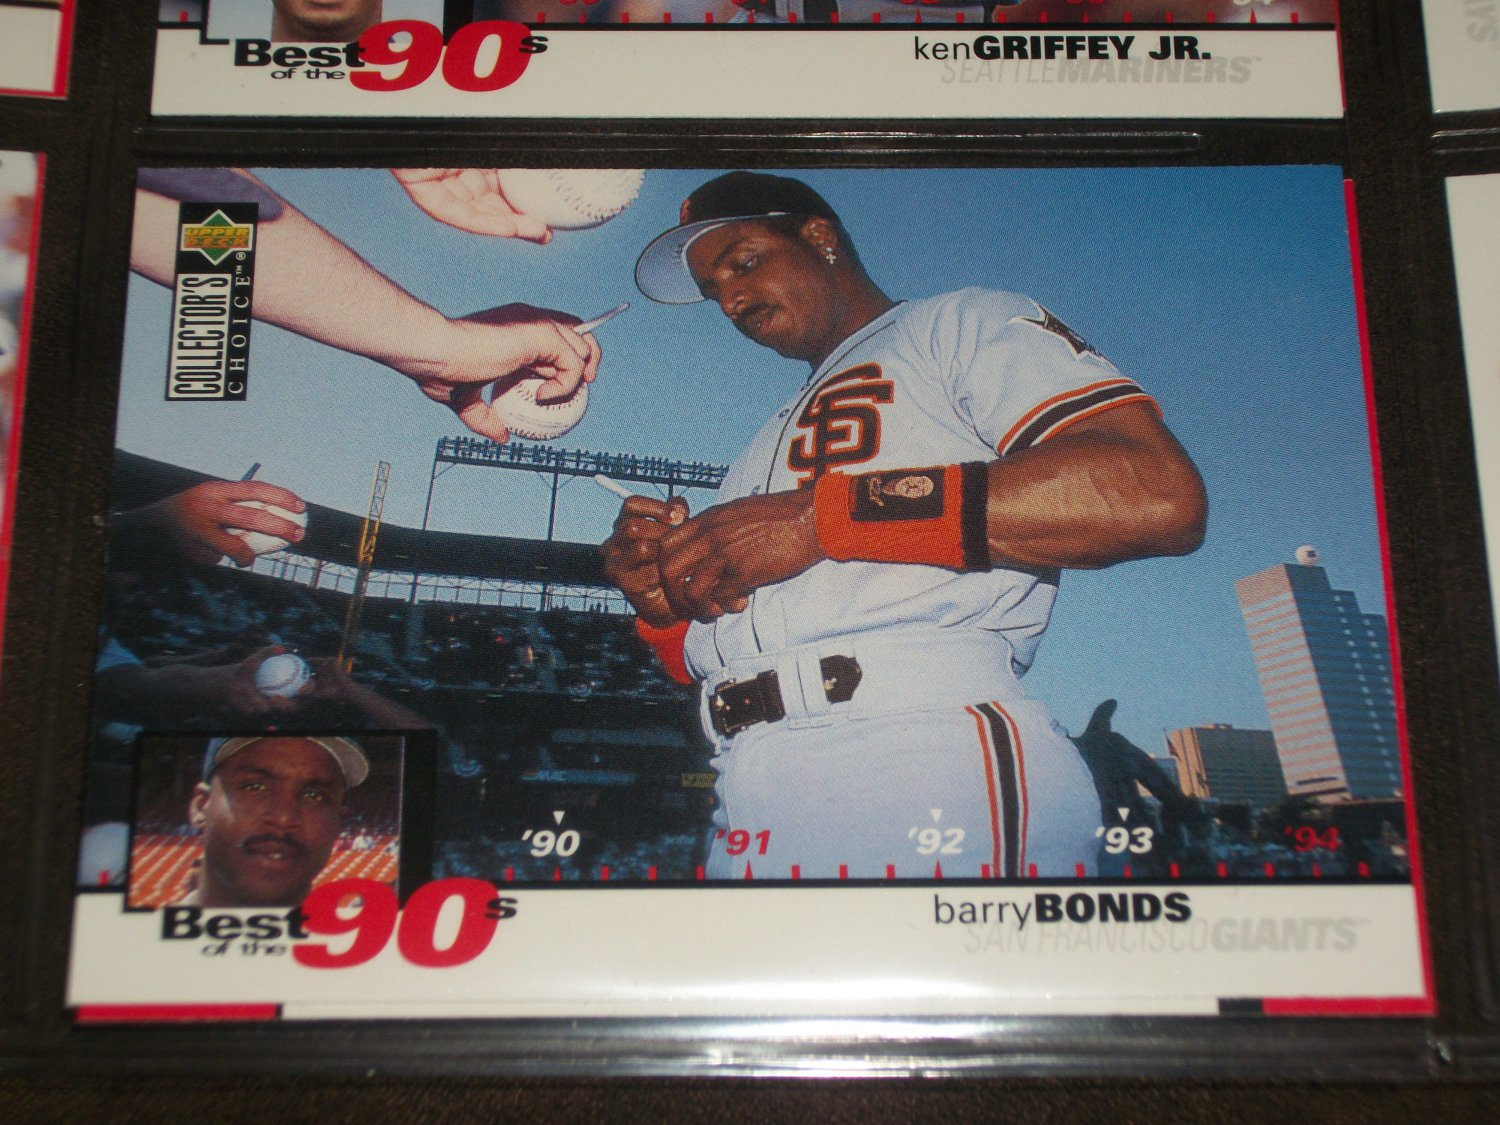 Barry Bonds 1994 Upper Deck-Best of the 90's card